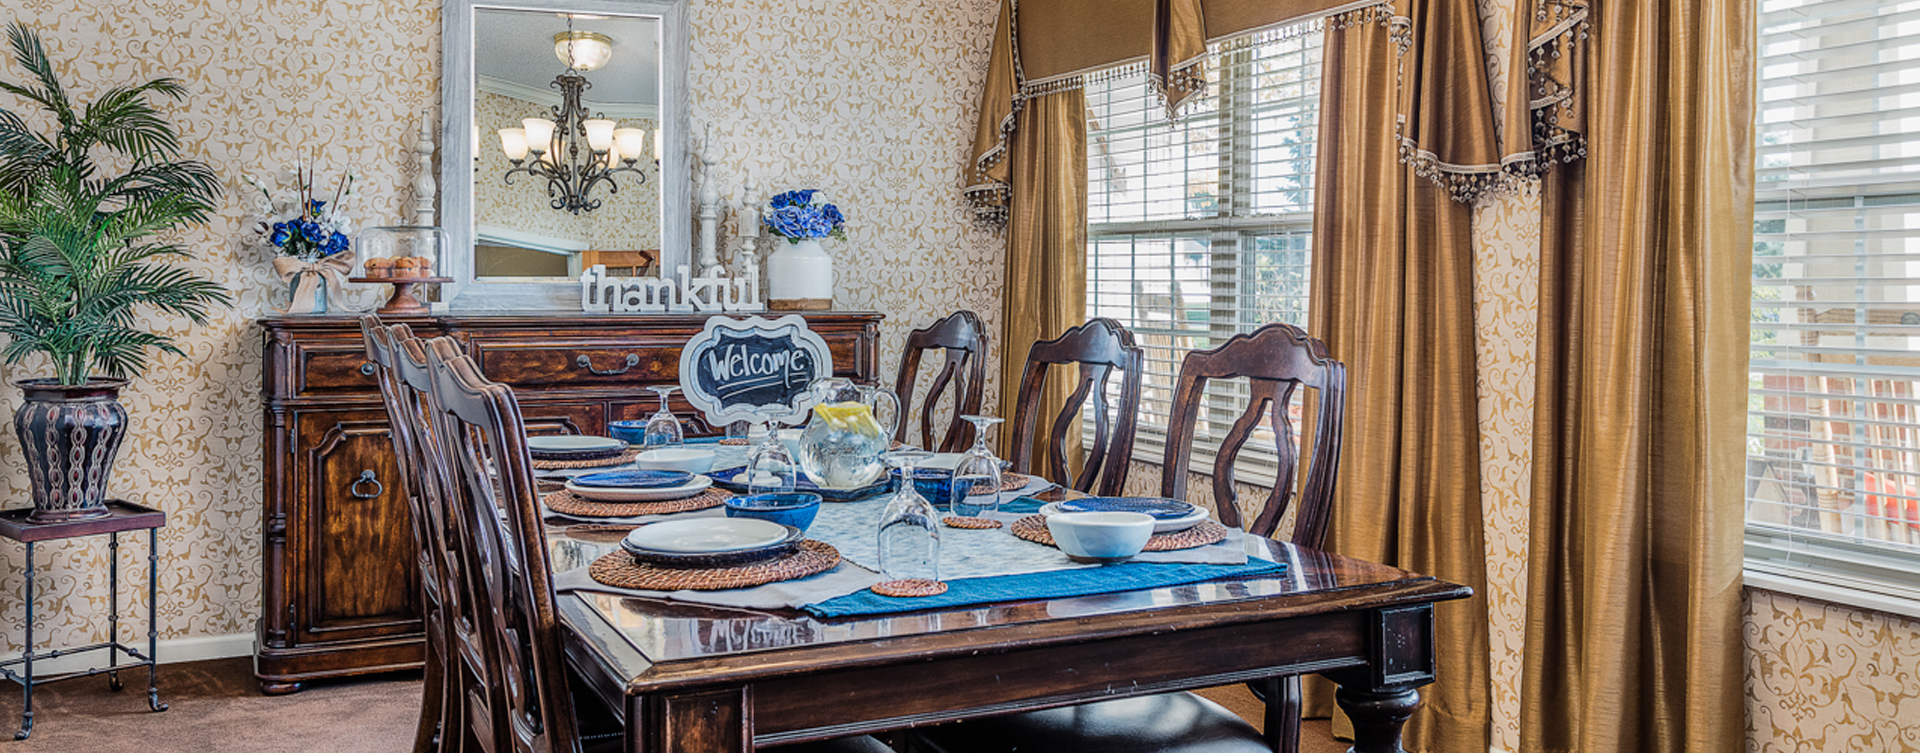 Have fun with themed and holiday meals in the private dining room at Bickford of Fort Dodge